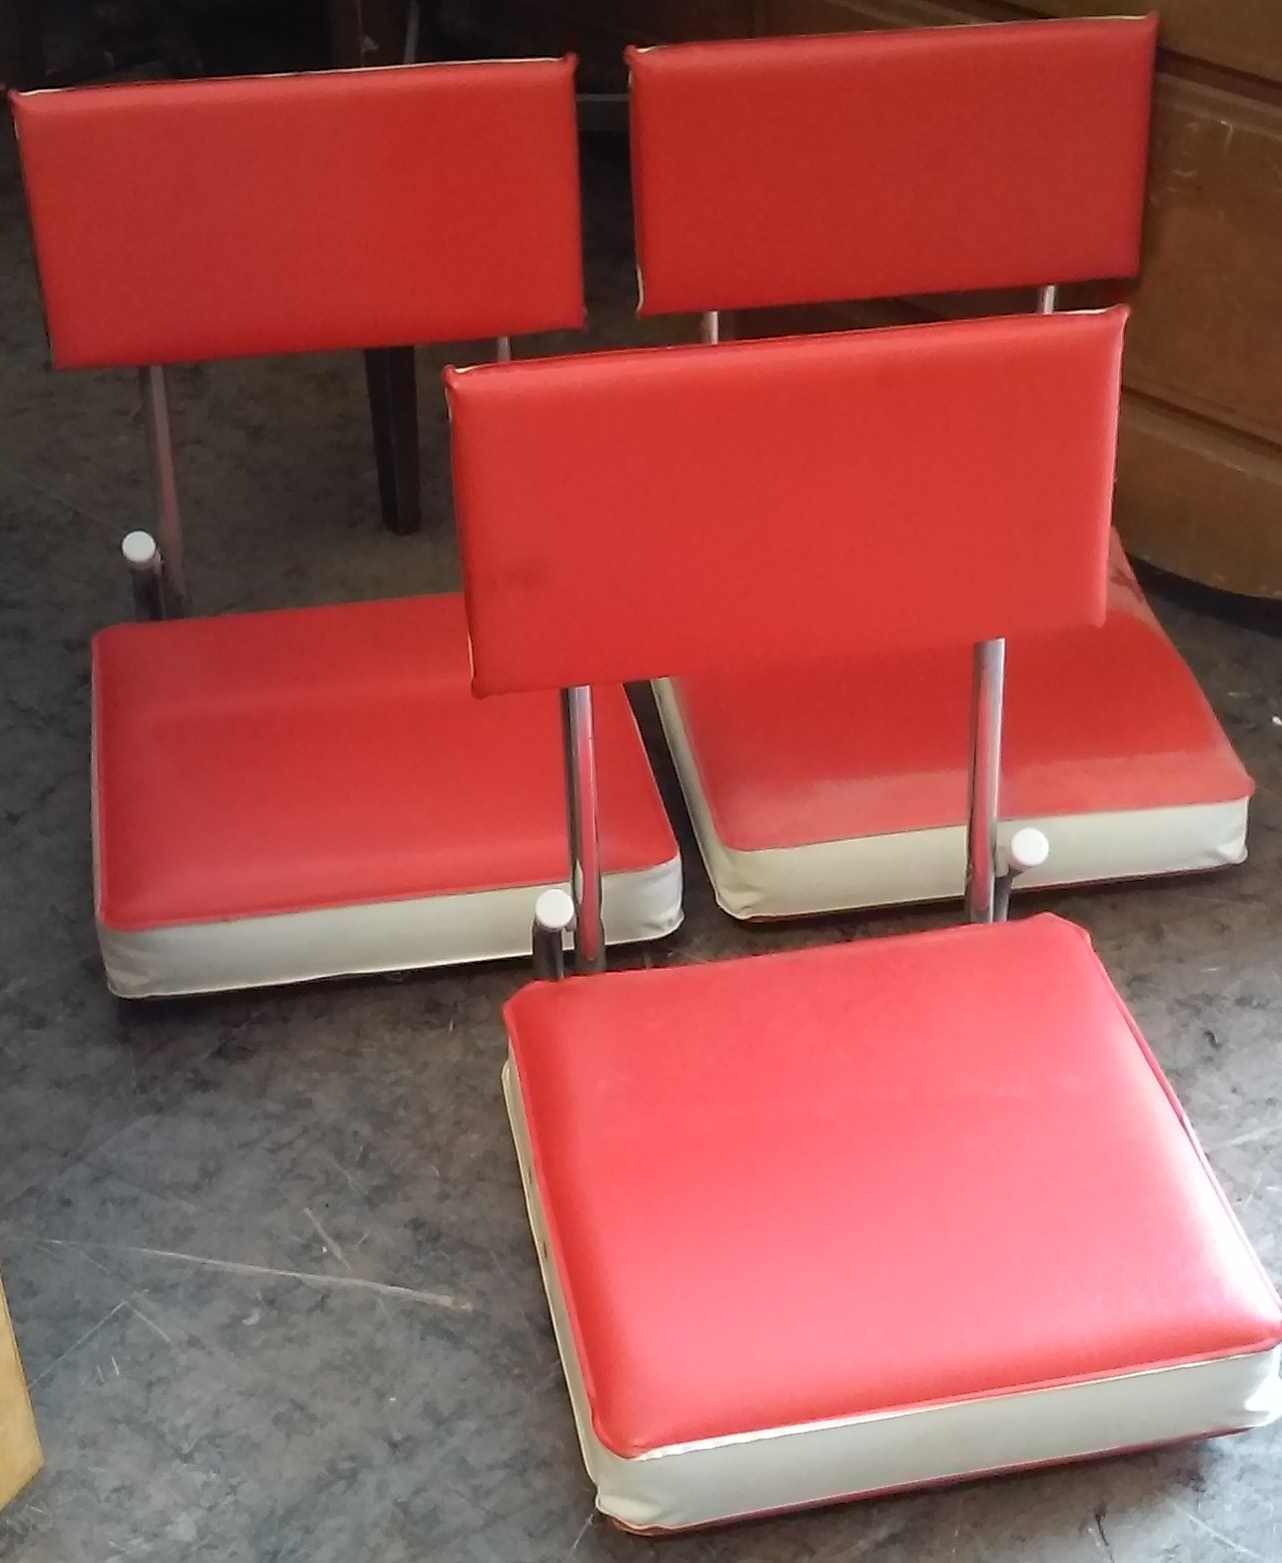 UHURU FURNITURE & COLLECTIBLES: SOLD **REDUCED** Vintage ...